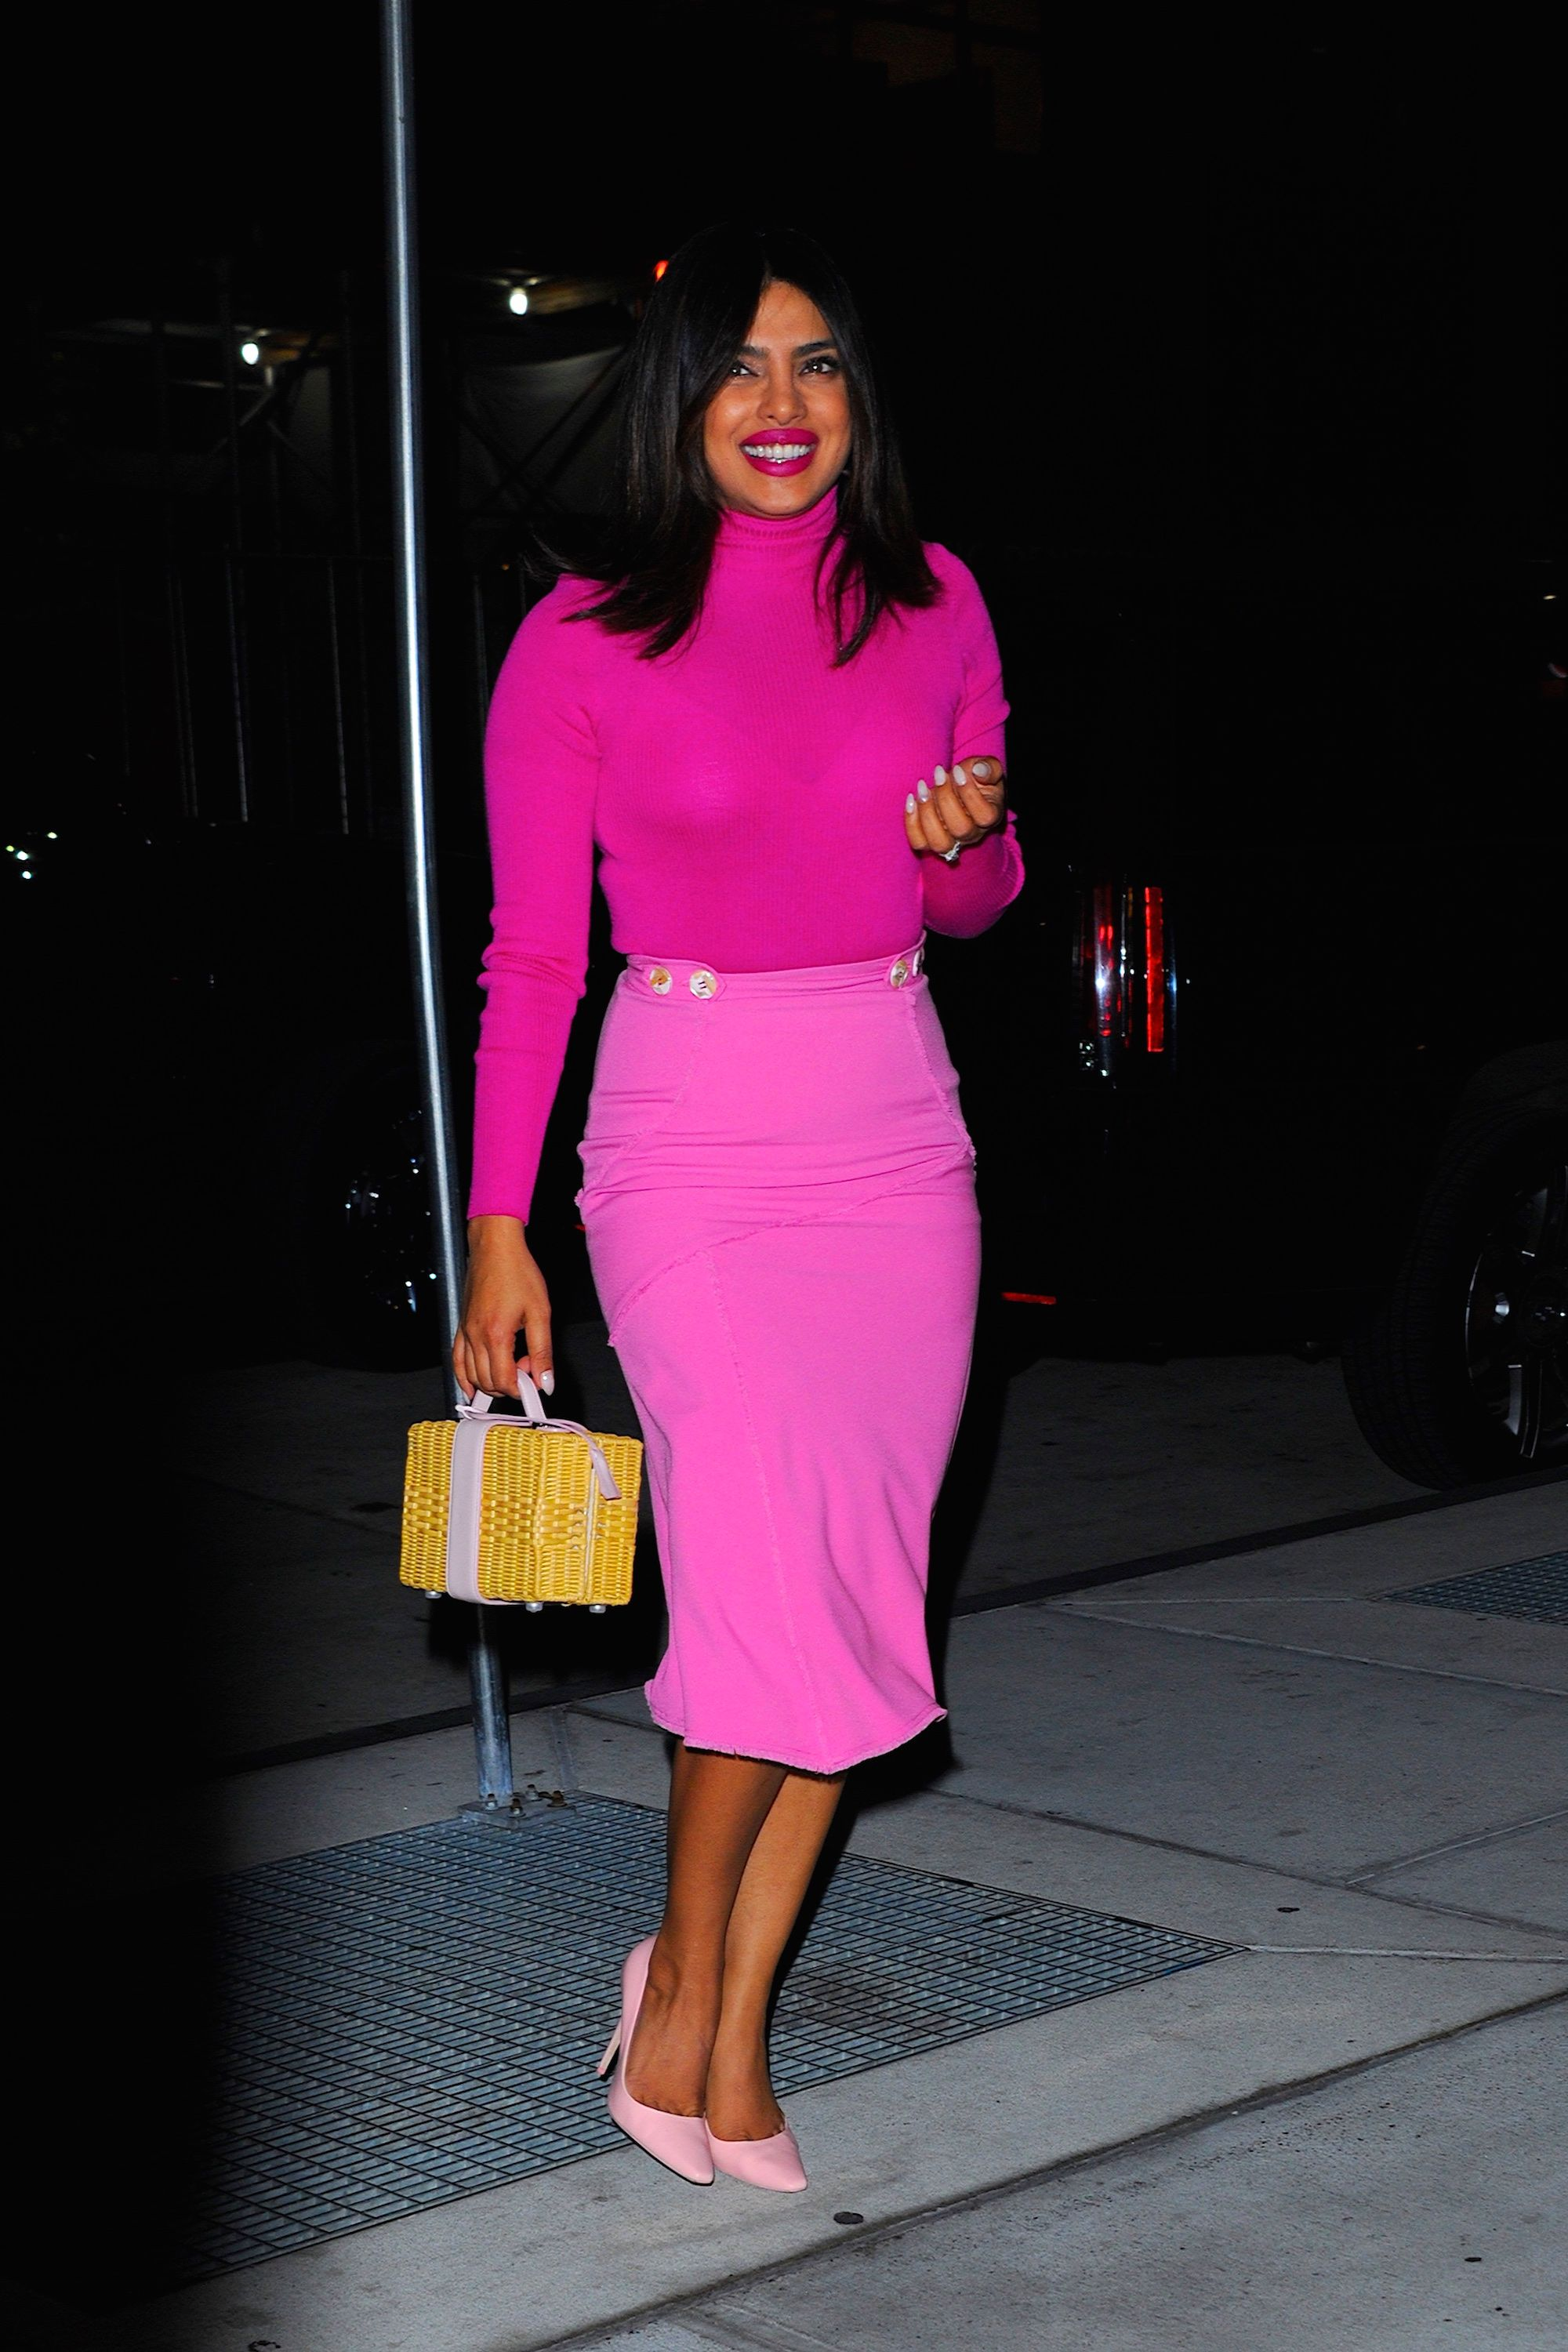 new york, ny   october 08  priyanka chopra seen out and about in manhattan on  october 8, 2019 in new york city  photo by robert kamaugc images